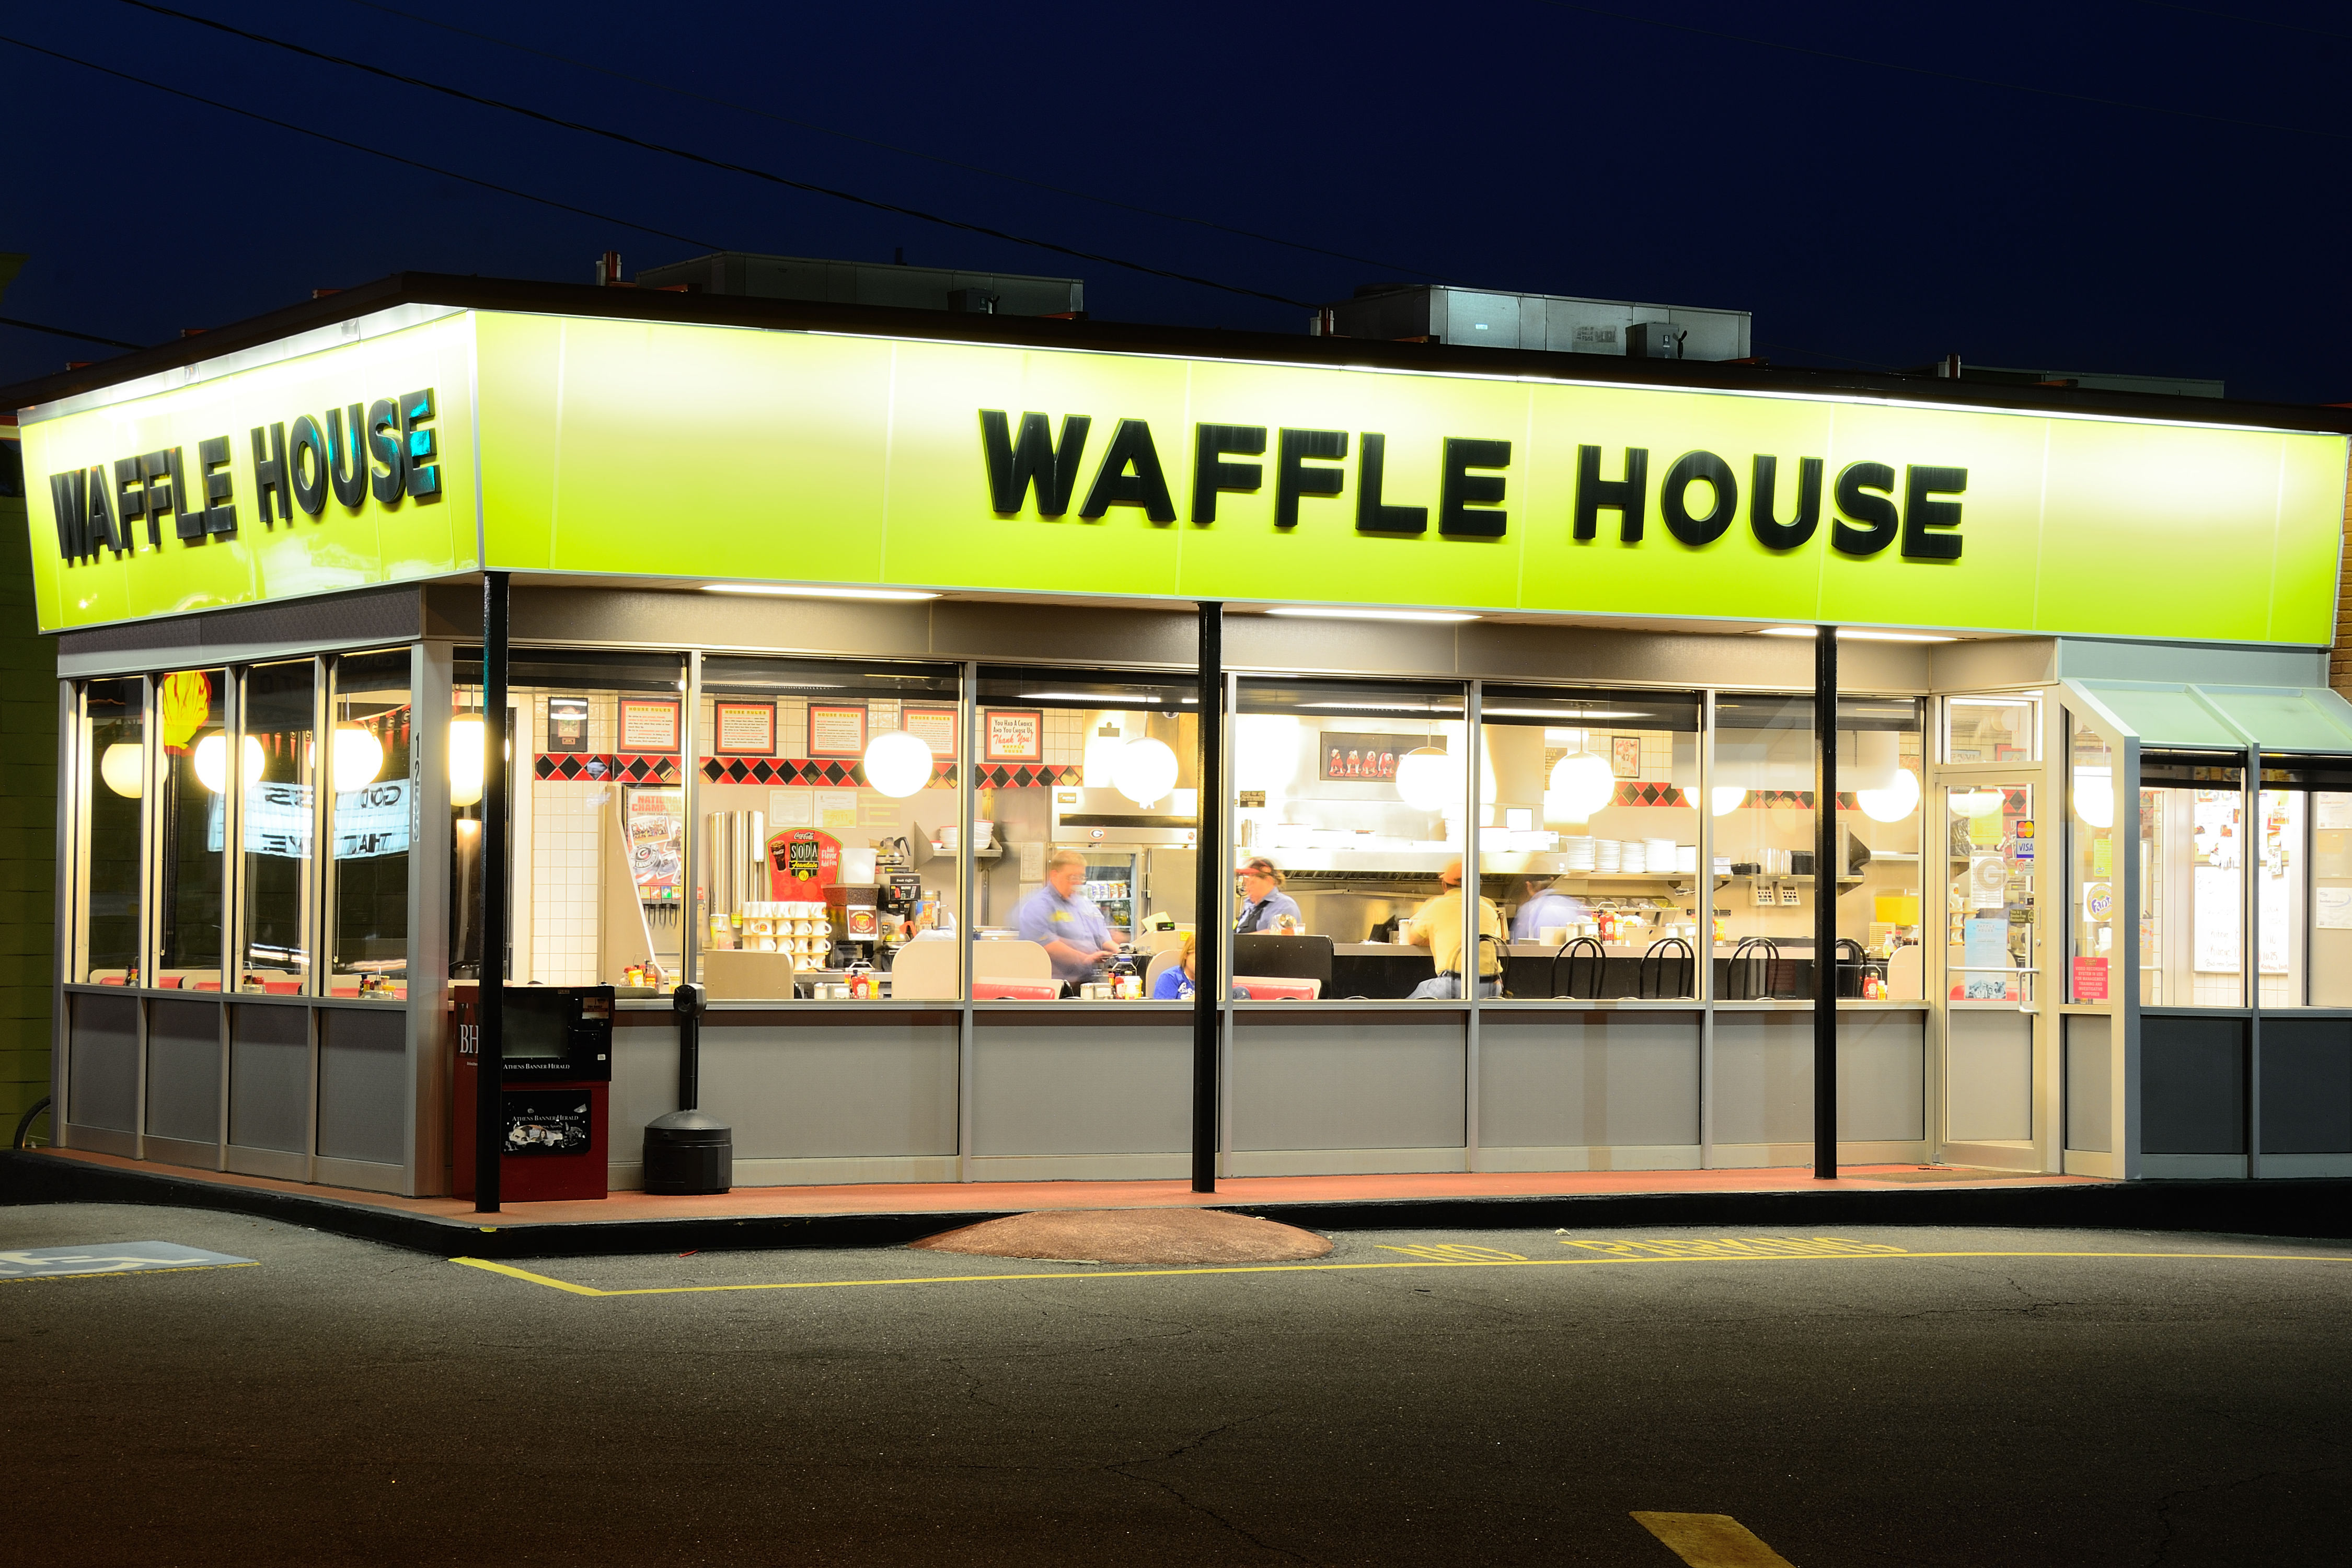 New Orleans Bakery Makes Couple the Most Amazing Waffle House-Themed Wedding Cake